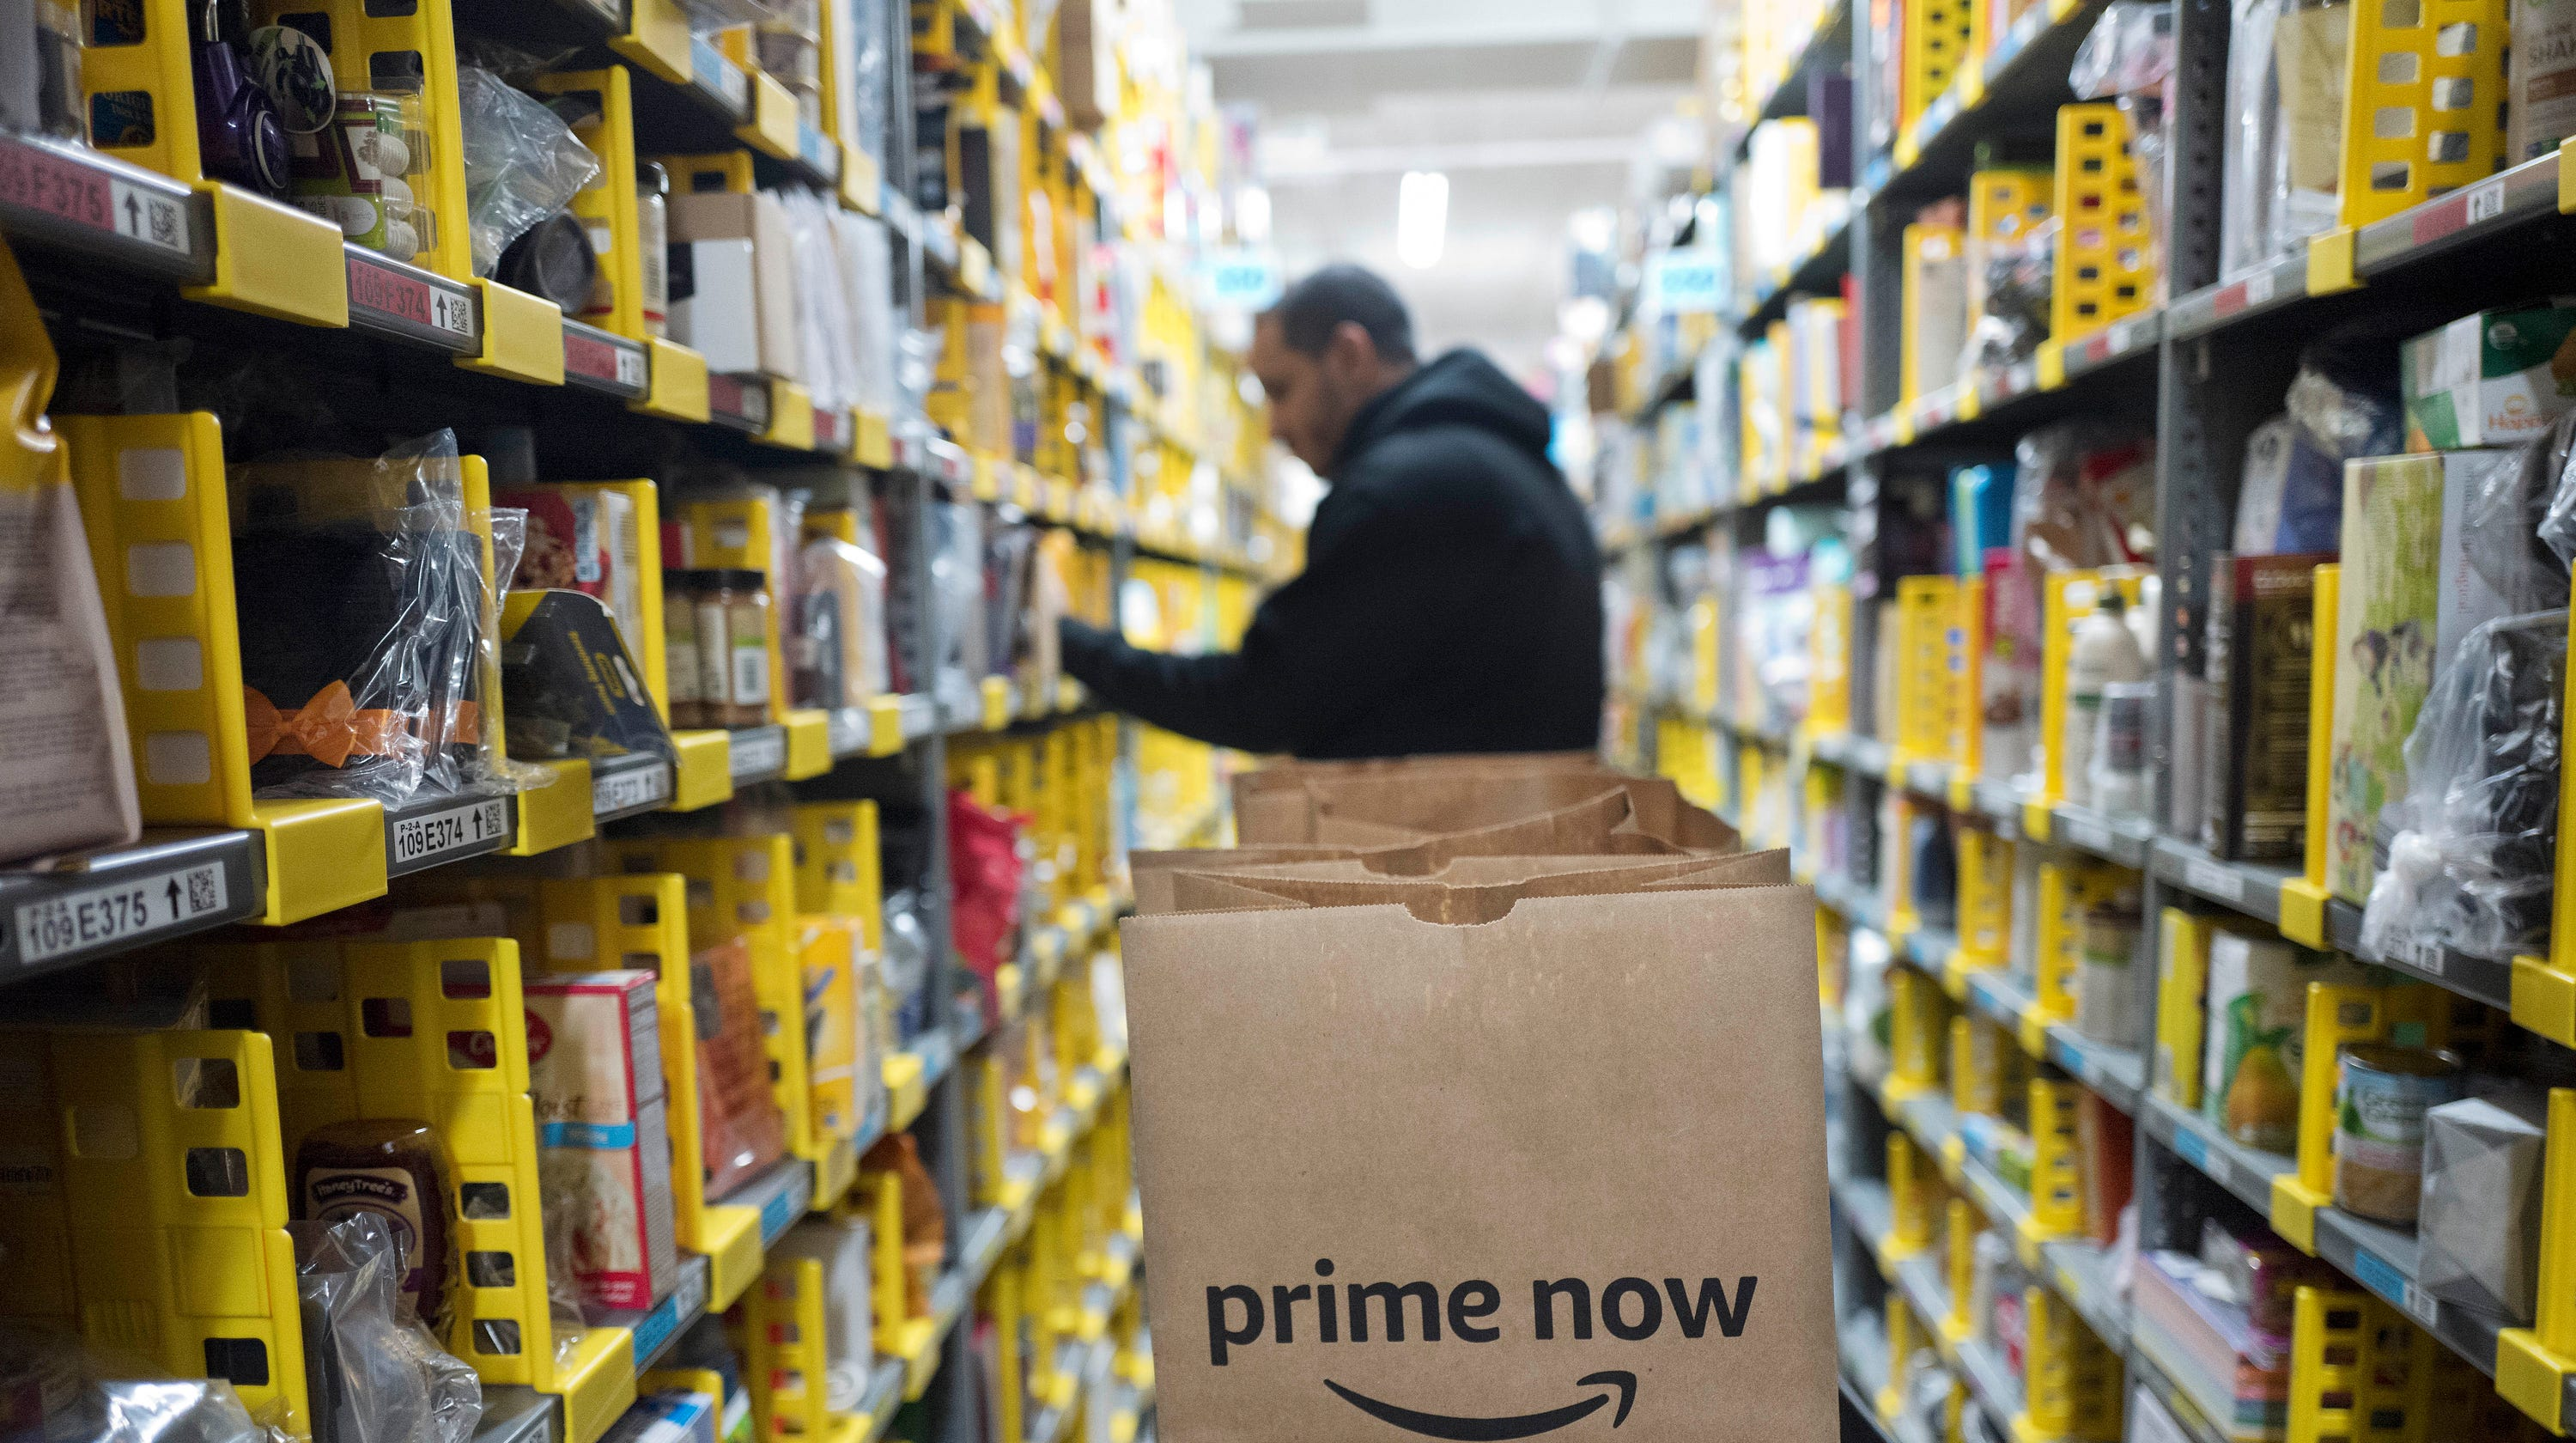 Coronavirus concerns at Amazon roil workers into labor actions